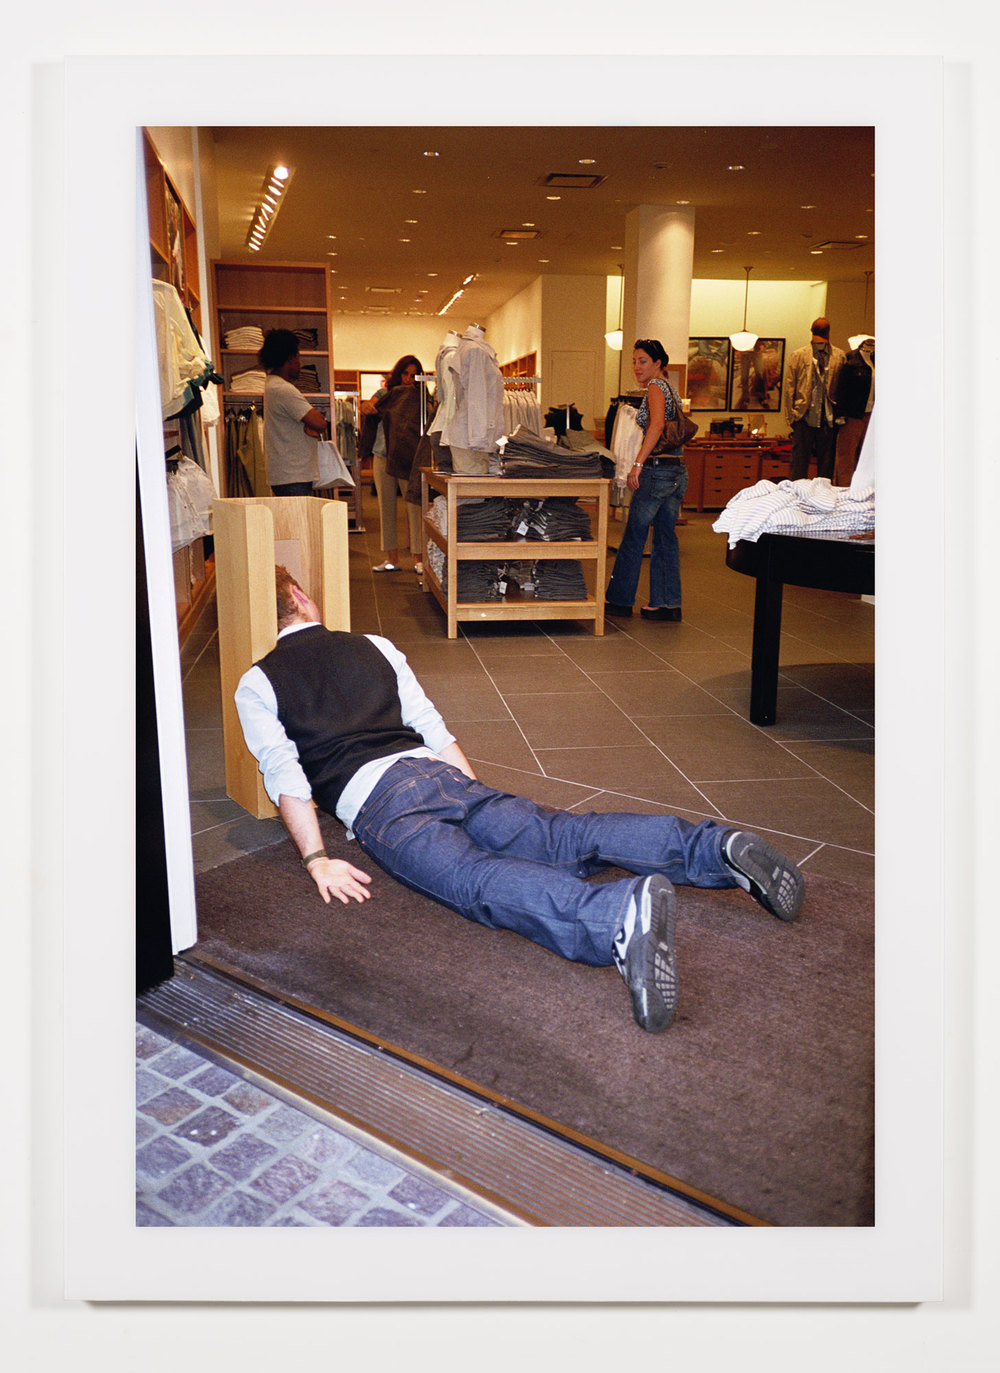 The Phenomenology of Shopping (J. Crew, The Grove, Los Angeles, CA)    2002   Chromogenic print  68 x 47 3/4 inches